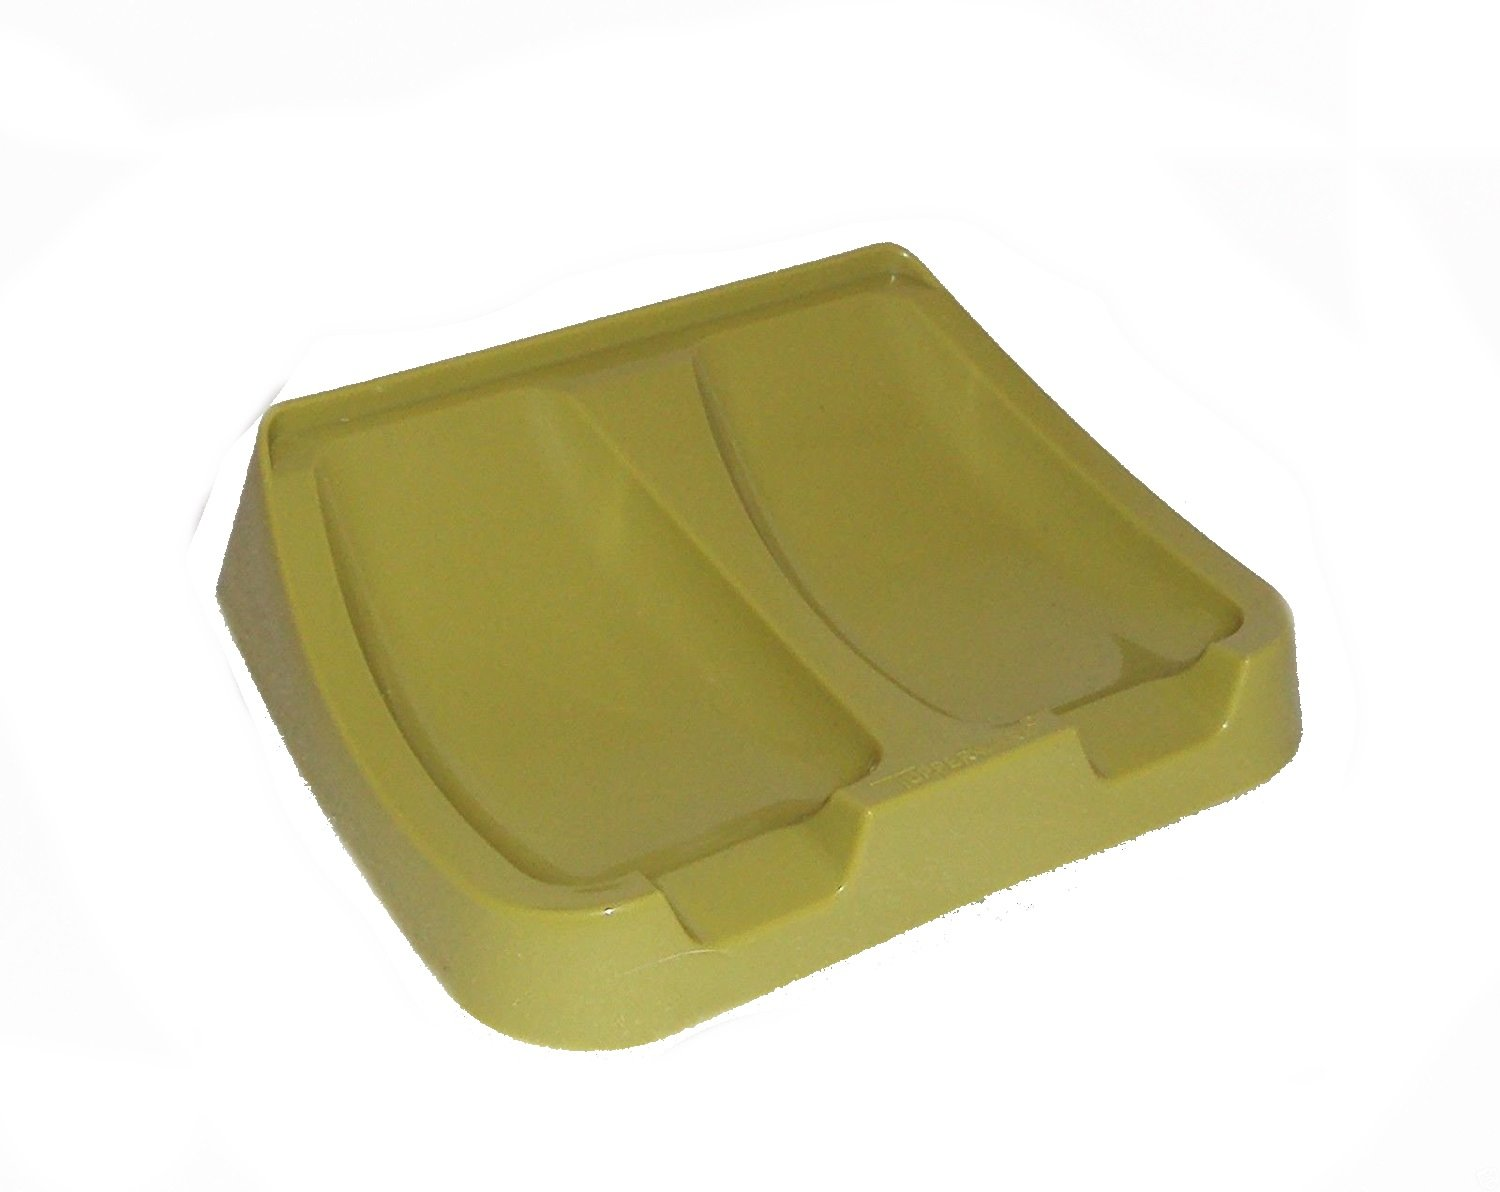 Vintage Tupperware Gadget Double Spoon Rest Retro Kitchen Avocado Green